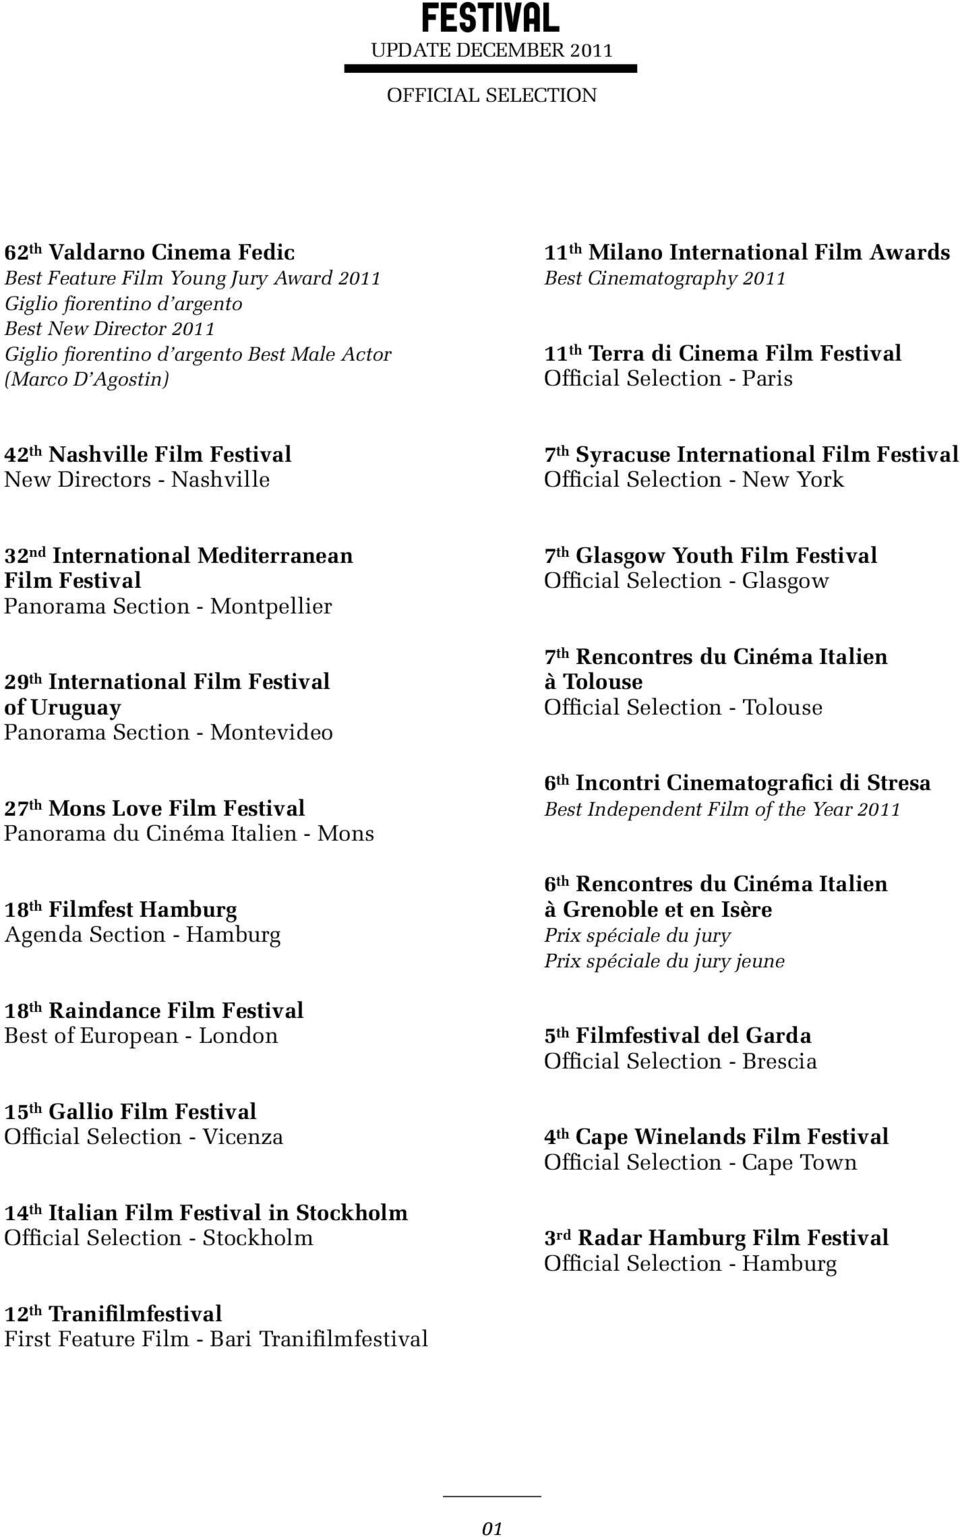 Directors - Nashville 7 th Syracuse International Film Festival Official Selection - New York 32 nd International Mediterranean Film Festival Panorama Section - Montpellier 29 th International Film